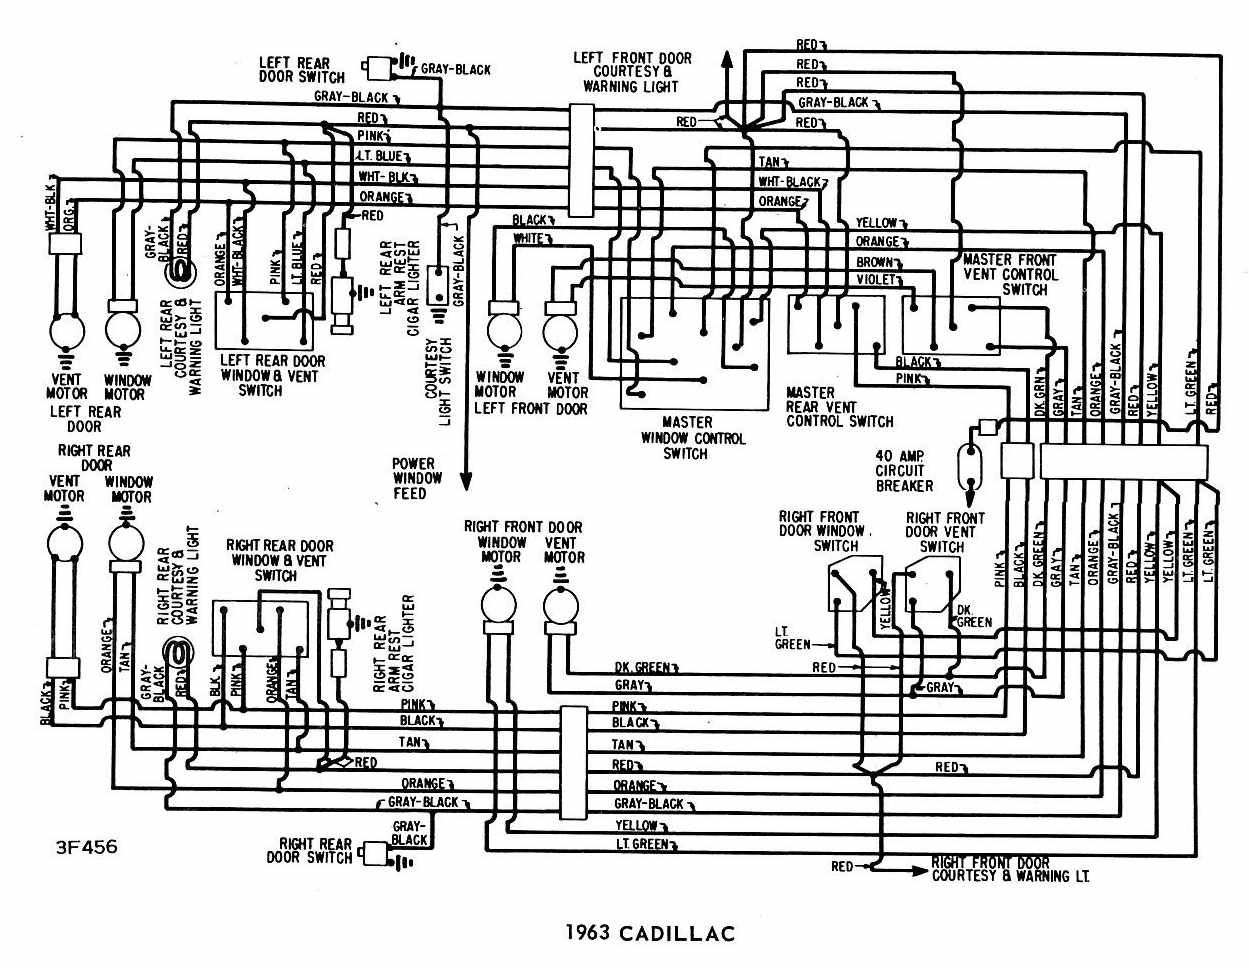 Wiring Diagrame For A 2001 Type S 33 Diagram Images 1970 Jaguar Schematic Cadillac 1963 Windows Free Diagrams Readingrat Net At Cita